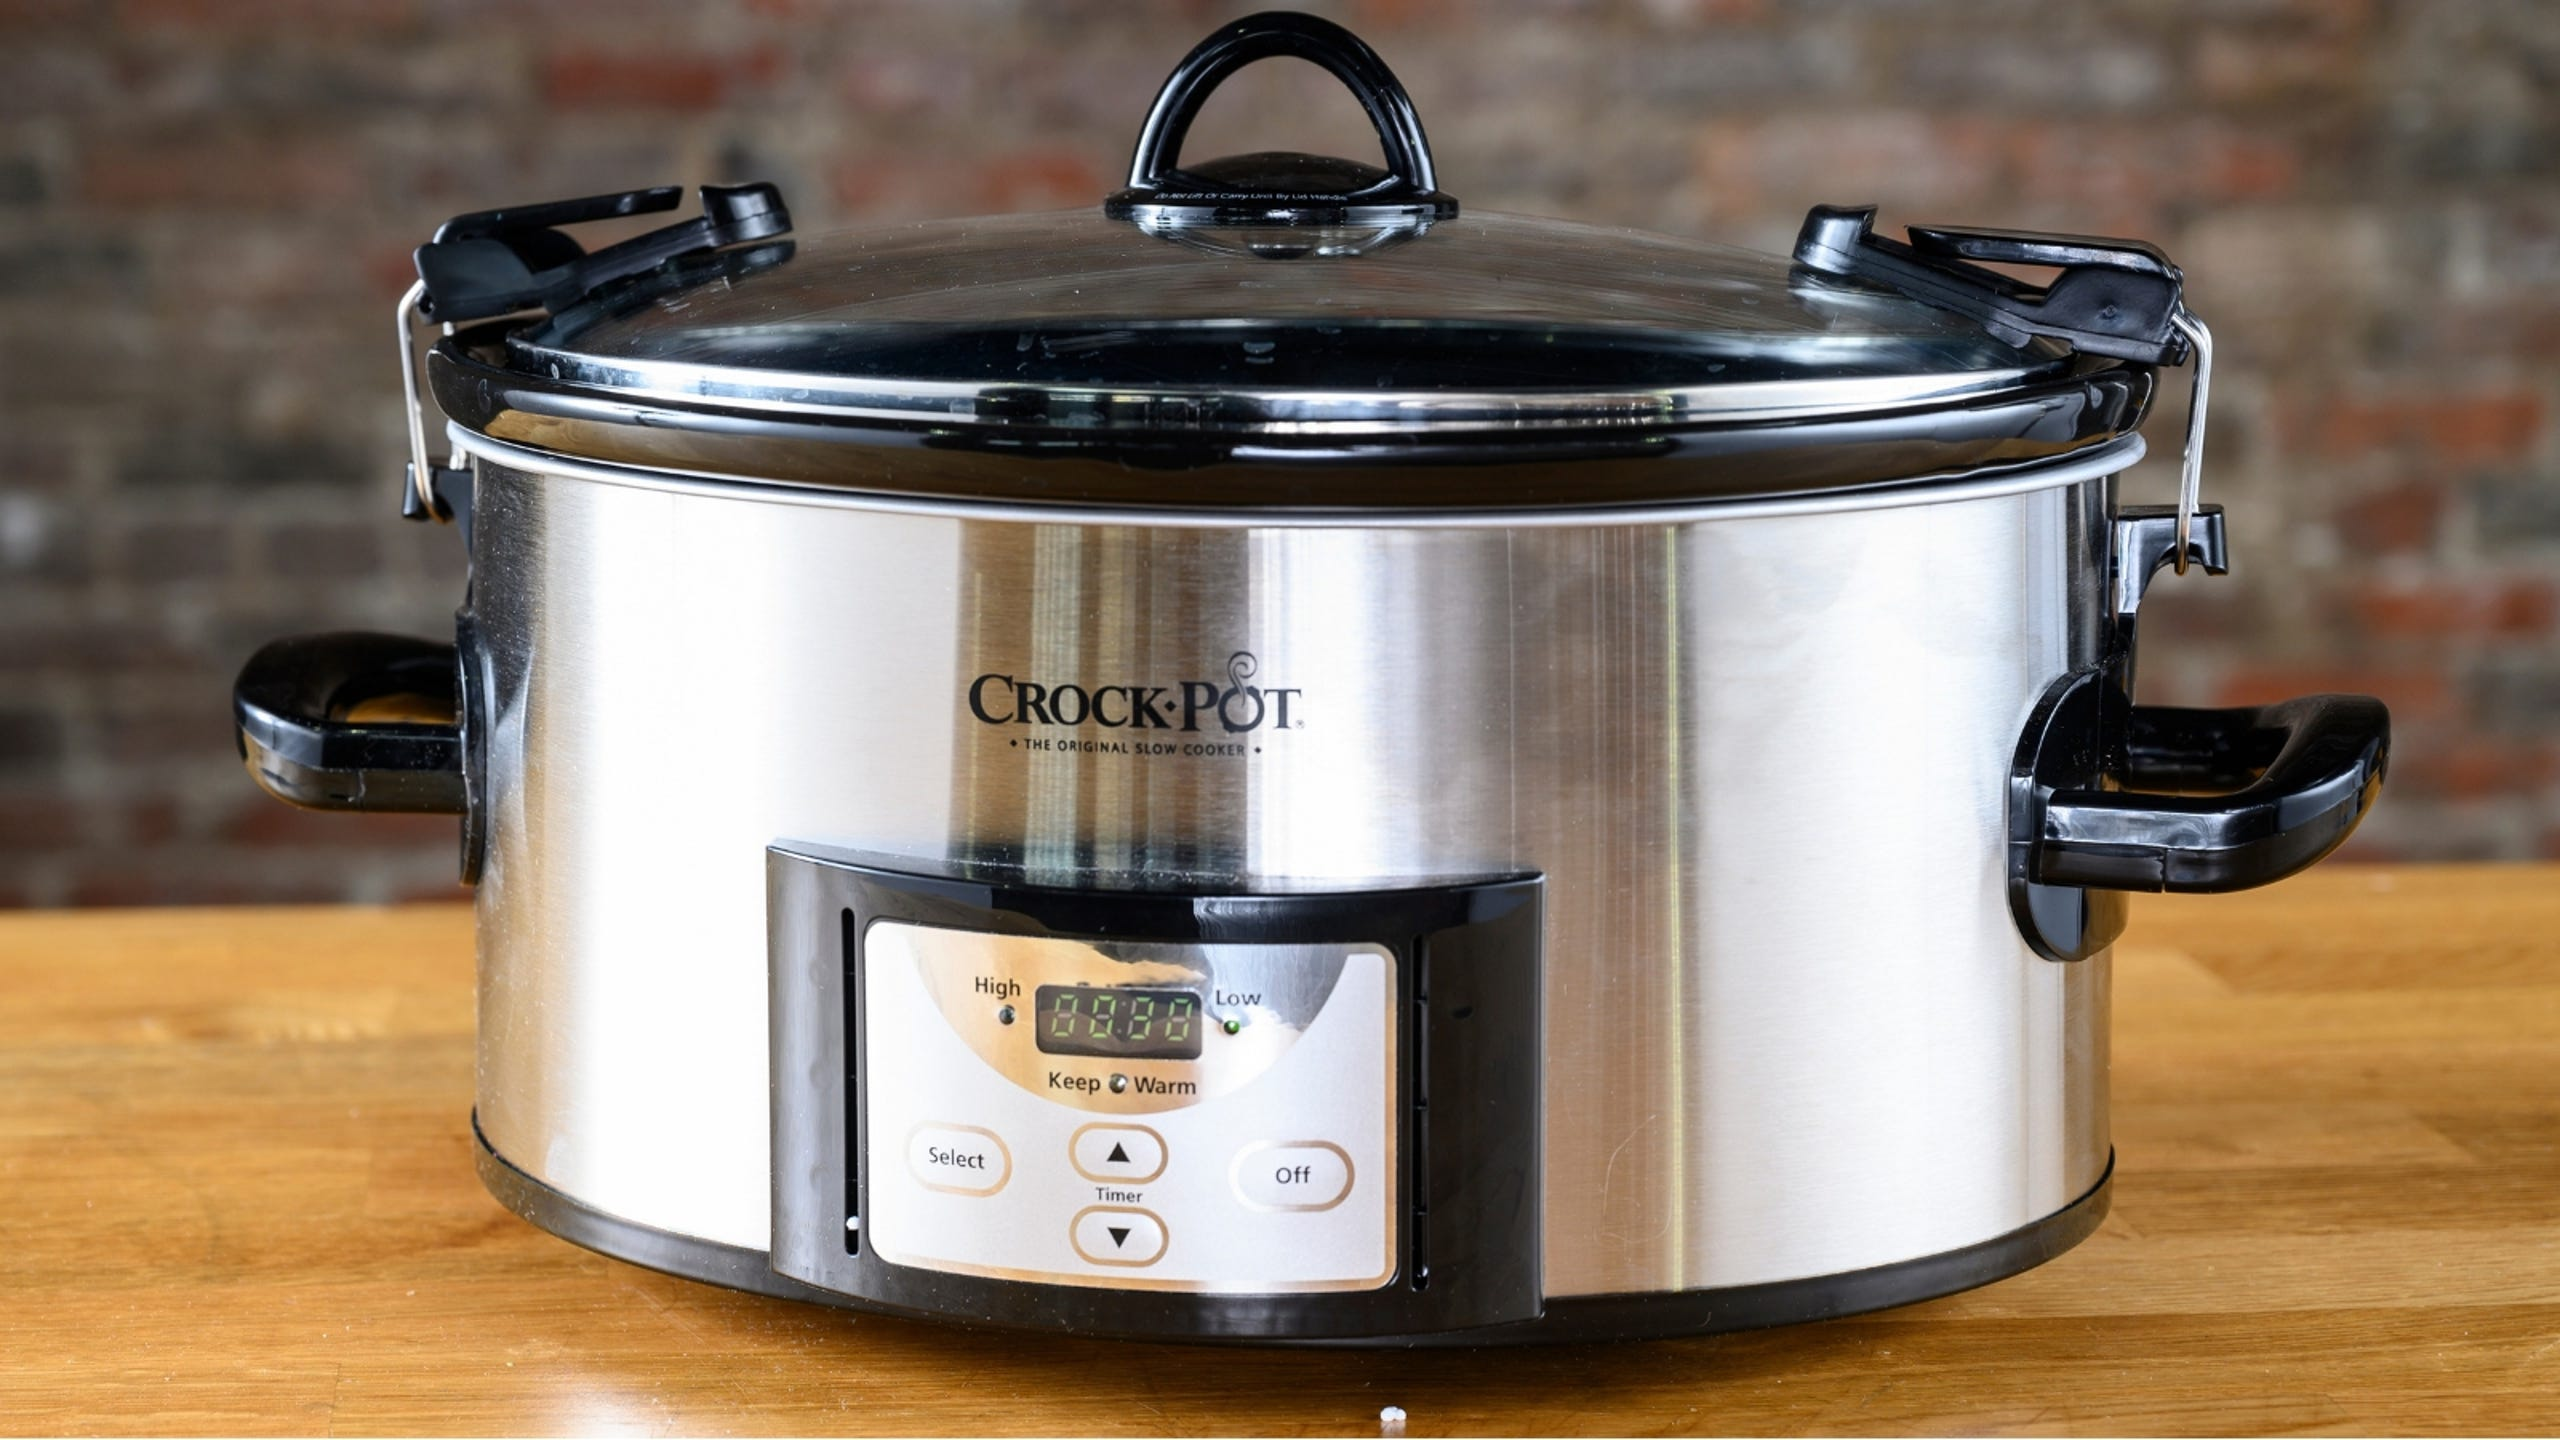 "Nobody has time to cook a full blown meal when they're under the weather, so a kitchen gadget that does all the work for you is a real game changer. We love this&nbsp;Crock-Pot for that exact purpose, and rated it <a href=""https://www.reviewed.com/cooking/best-right-now/best-slow-cookers-crock-pots?utm_source=usat&amp;utm_medium=referral&amp;utm_campaign=collab"" target=""_blank"">the best affordable slow cooker</a>&nbsp;because of how well it performed in all our tests, making it well on-par with higher-end models. (<strong><a href=""https://www.amazon.com/Crock-Pot-SCCPVL610-S-6-Quart-Programmable-Stainless/dp/B004P2NG0K/ref=as_li_ss_tl?ie=UTF8&amp;linkCode=ll1&amp;tag=usatgallery-20&amp;linkId=41b1175c9577f27af285e945a7a430dd&amp;language=en_US"" target=""_blank"">$35.47 on Amazon</a></strong>)"